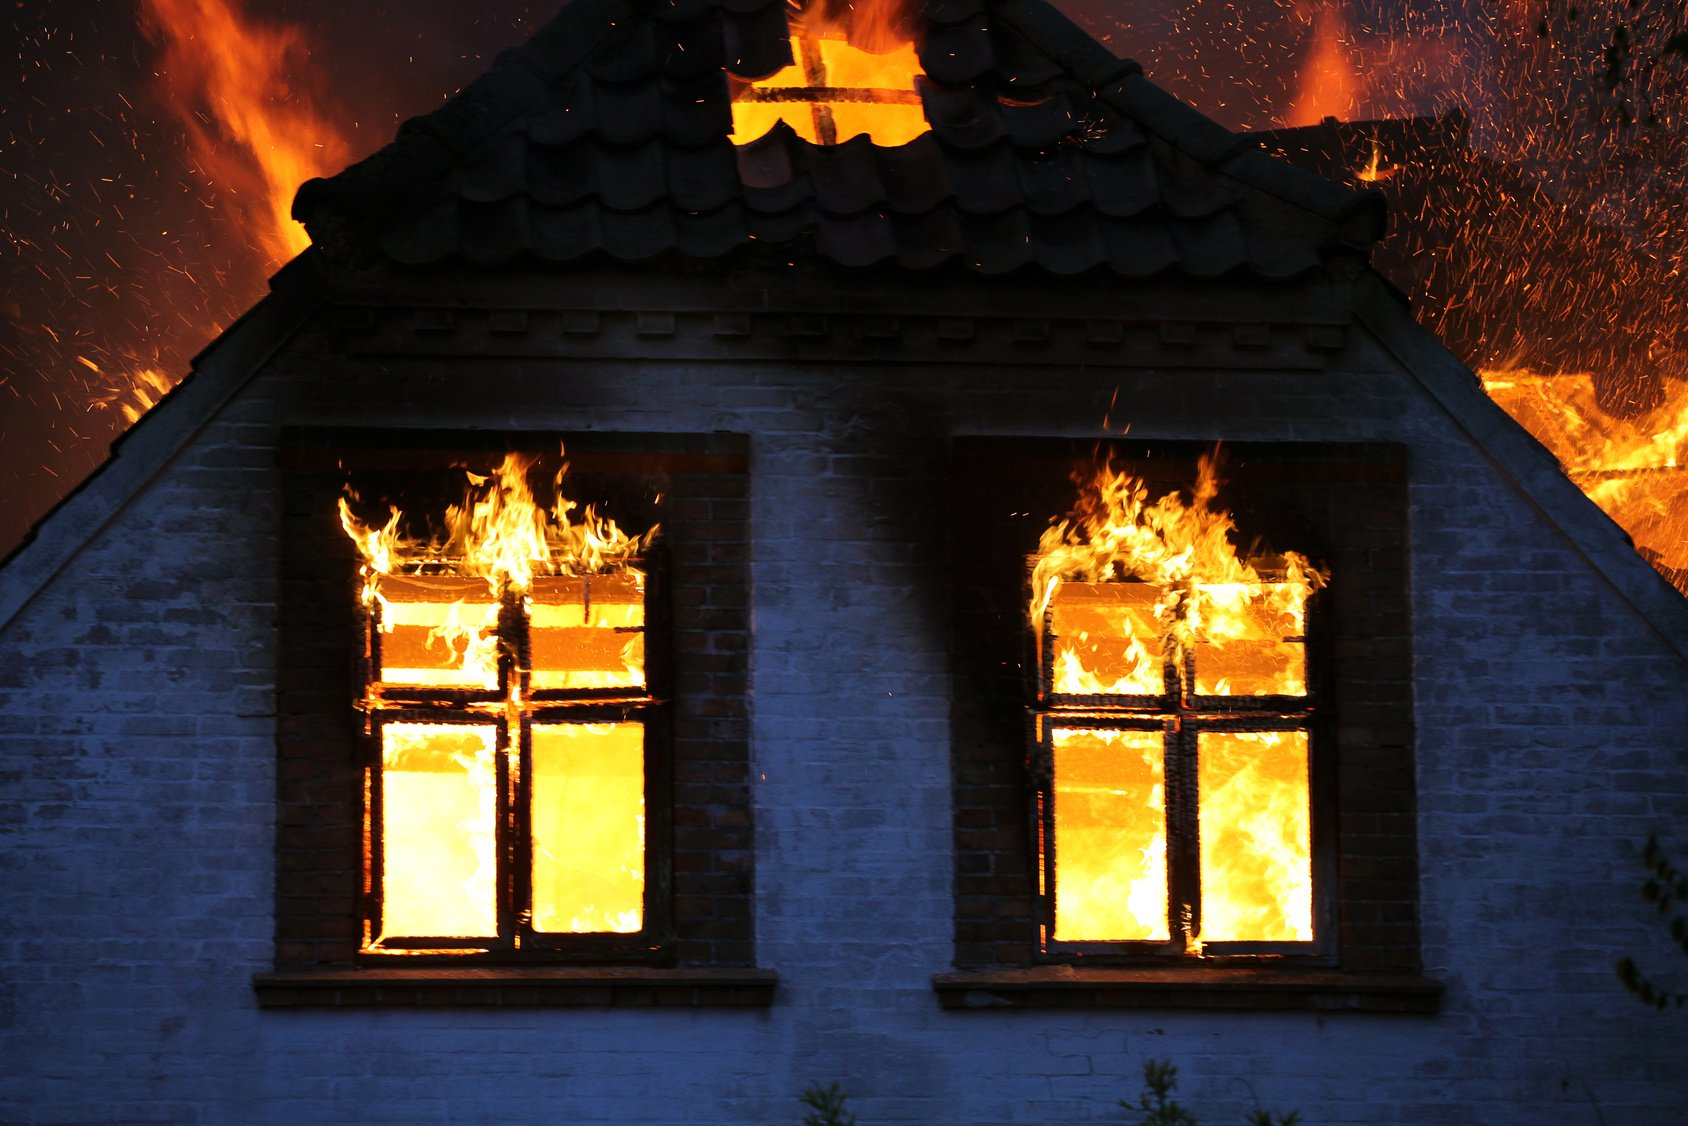 How Homeowners Can Prevent Spontaneous Combustion